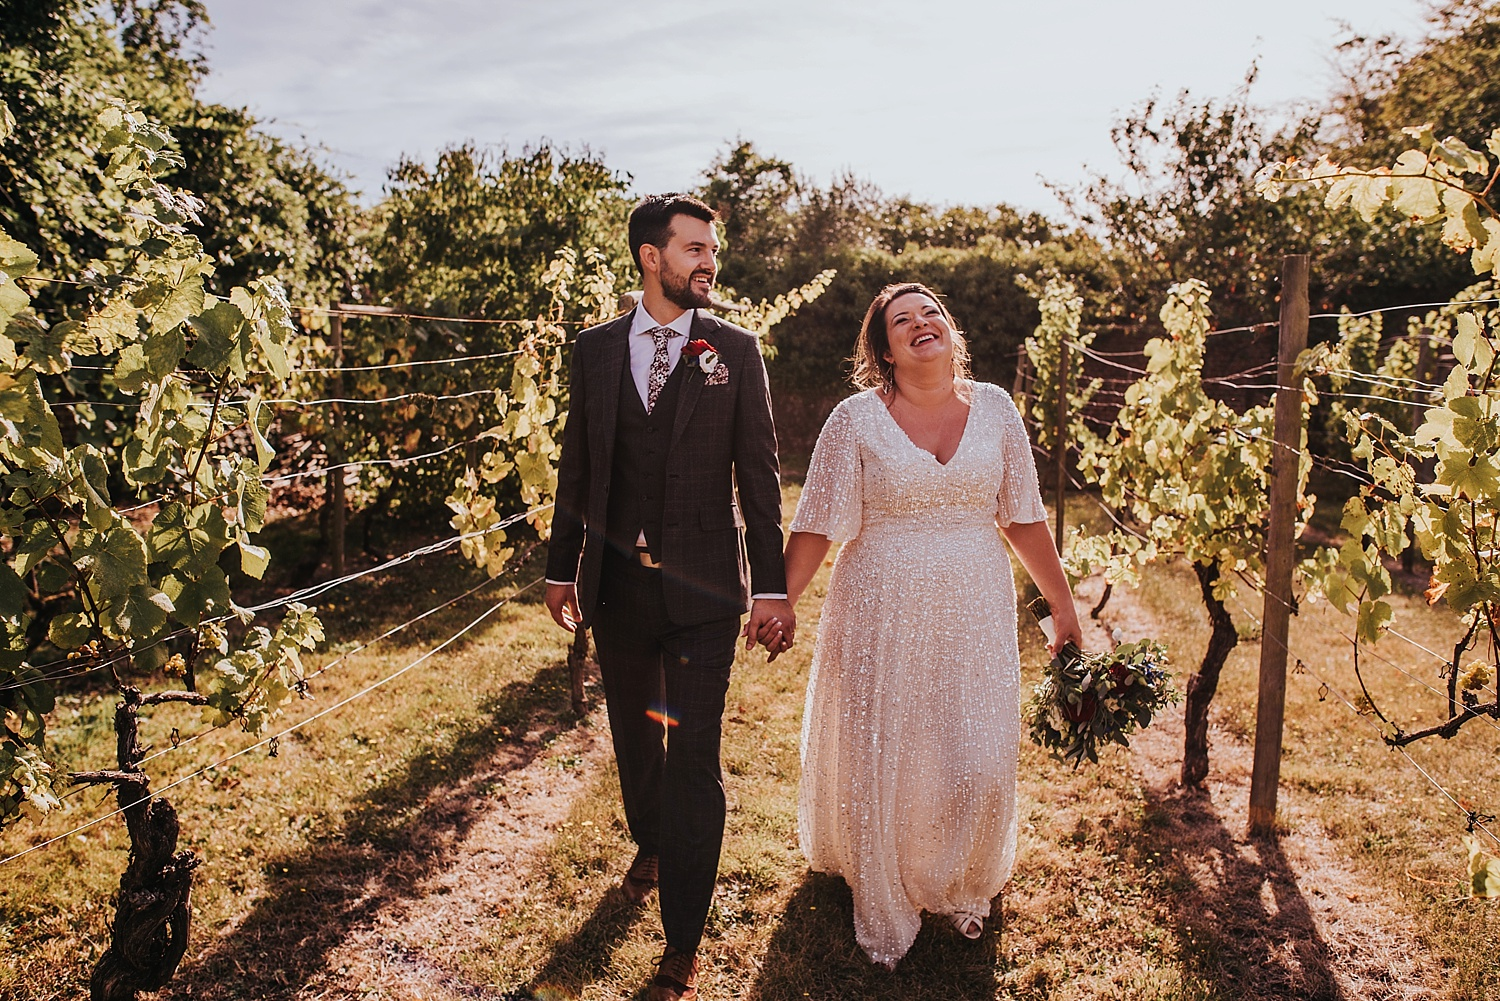 Bride and groom walking hand in hand through vineyard at Stanlake Park